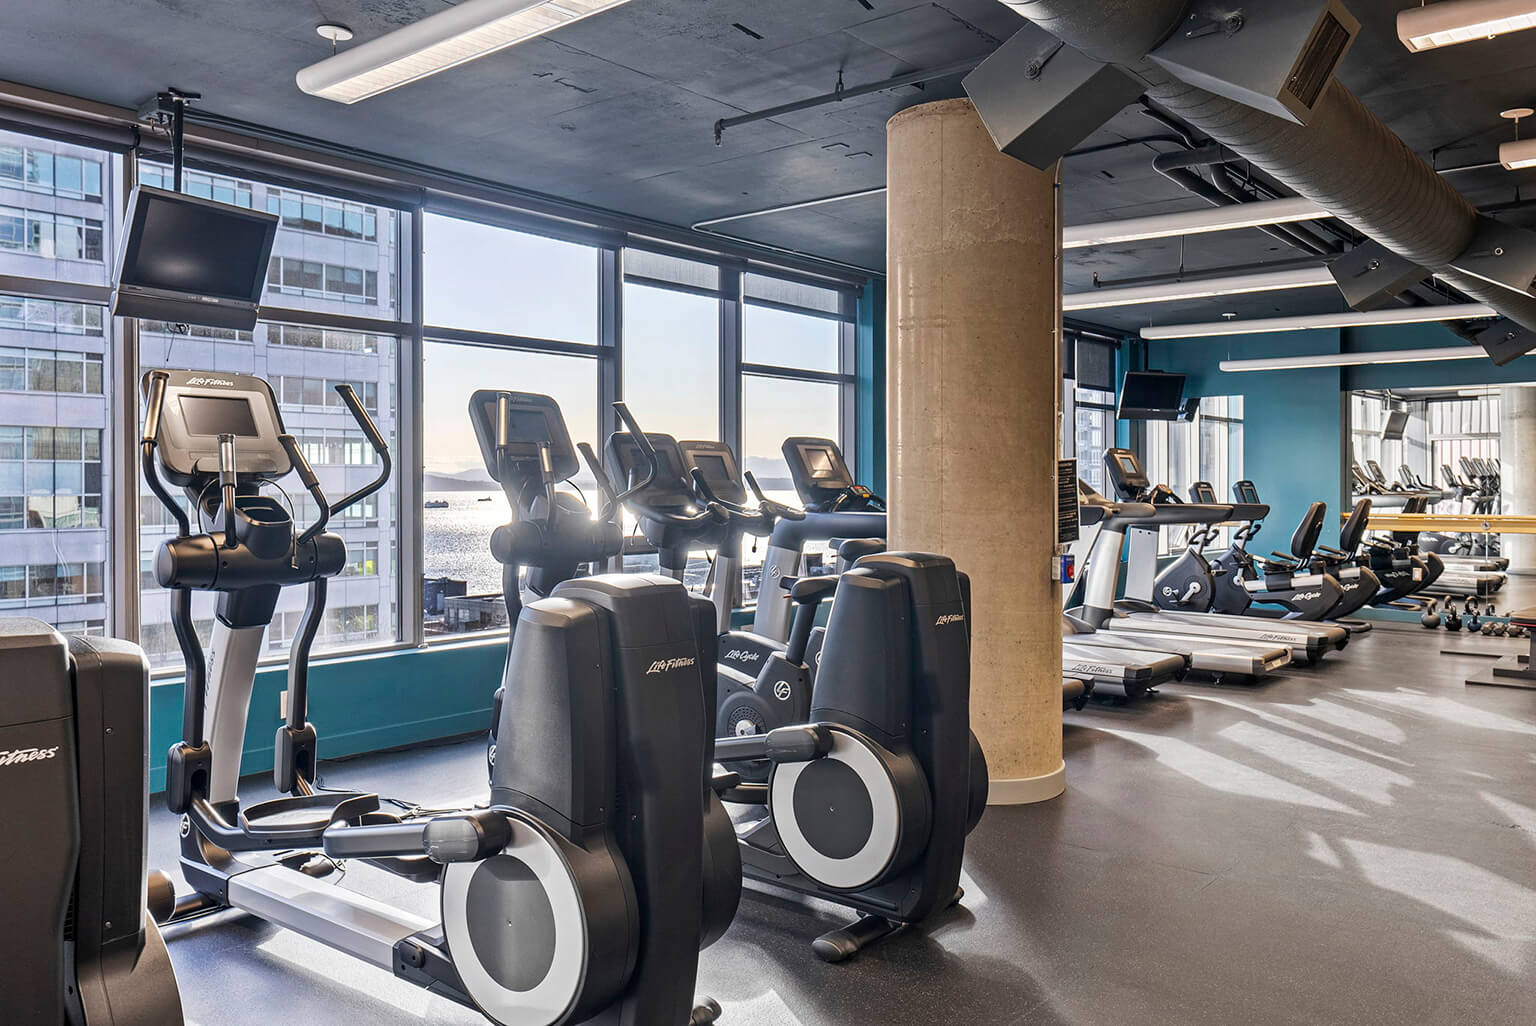 Sixth floor fitness room with cardio equipment and weights